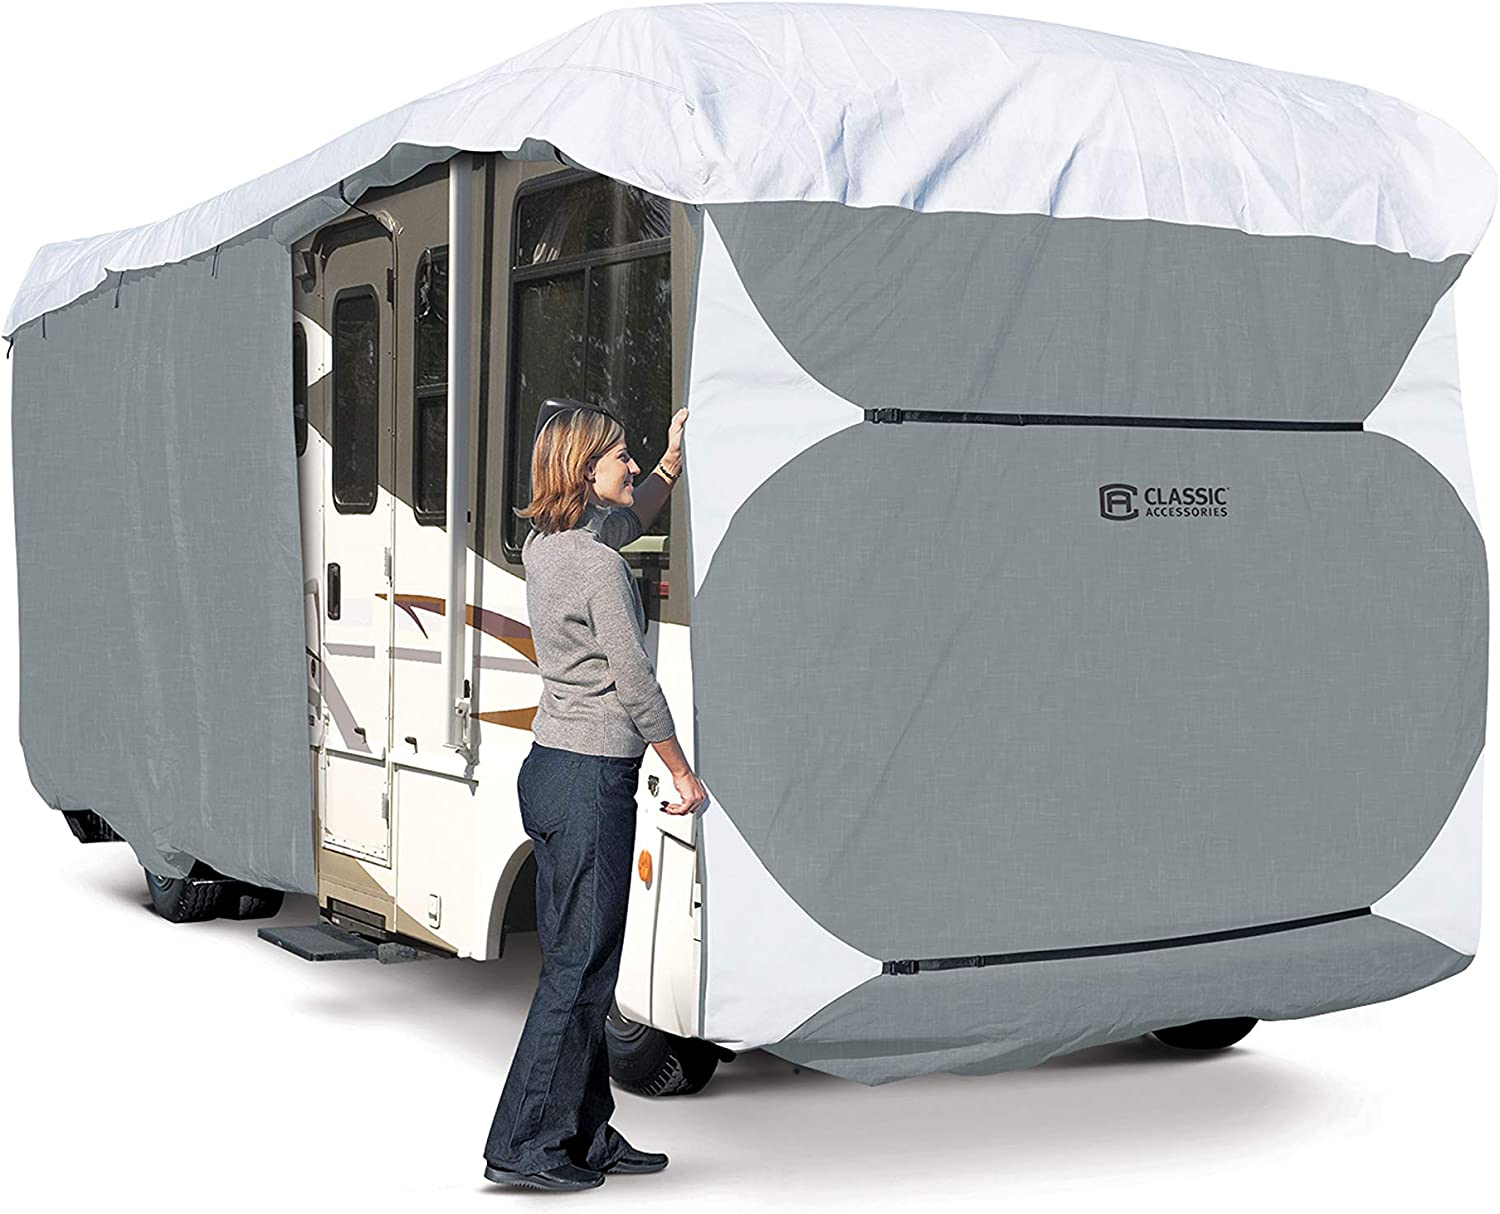 Classic Accessories Over Drive PolyPRO3 Deluxe Class A RV Cover, Fits 30' - 33' RVs (80-336-183101-RT)